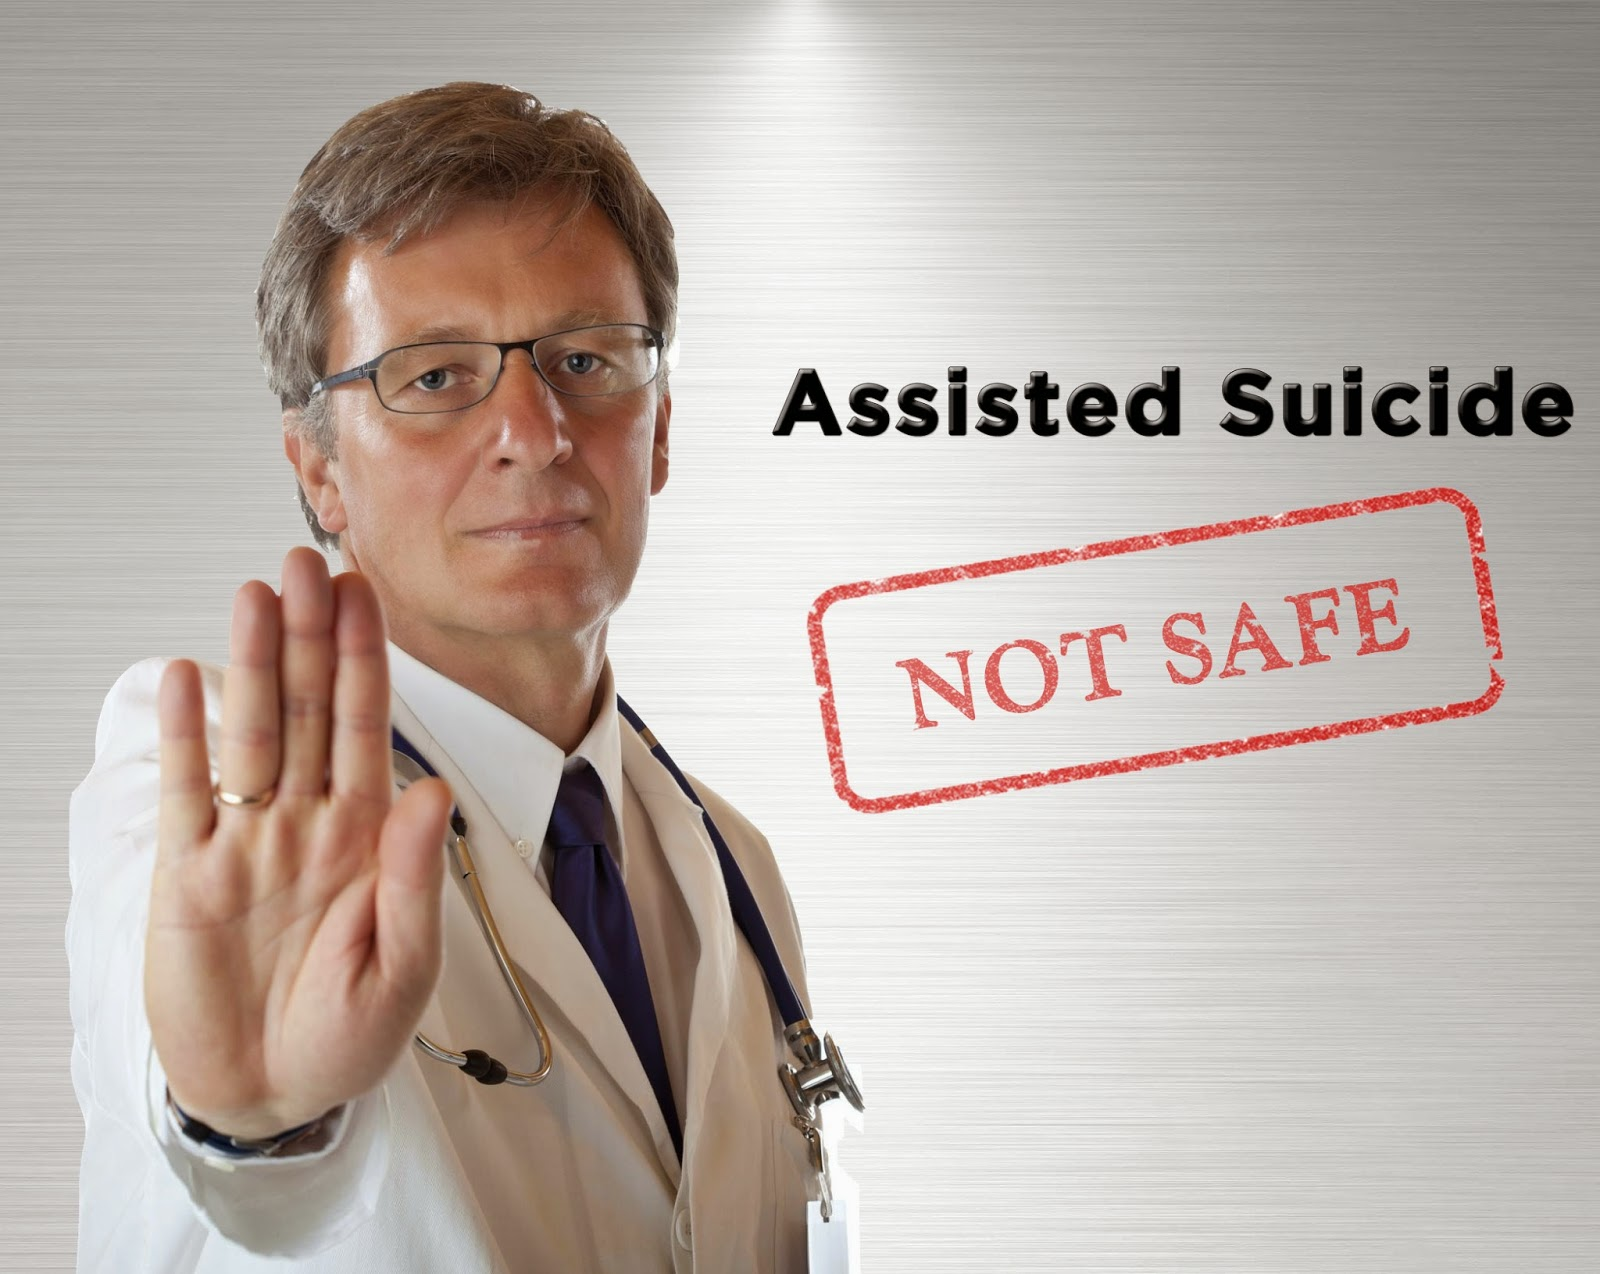 physician-assisted suicide: for and against essay Euthanasia or physician assisted suicide should not be legal it is an unethical option rushing the death of a person by changing some form of support and letting nature take its course or stopping a treatment that will cause the person to finally die is what's known as passive euthanasia.